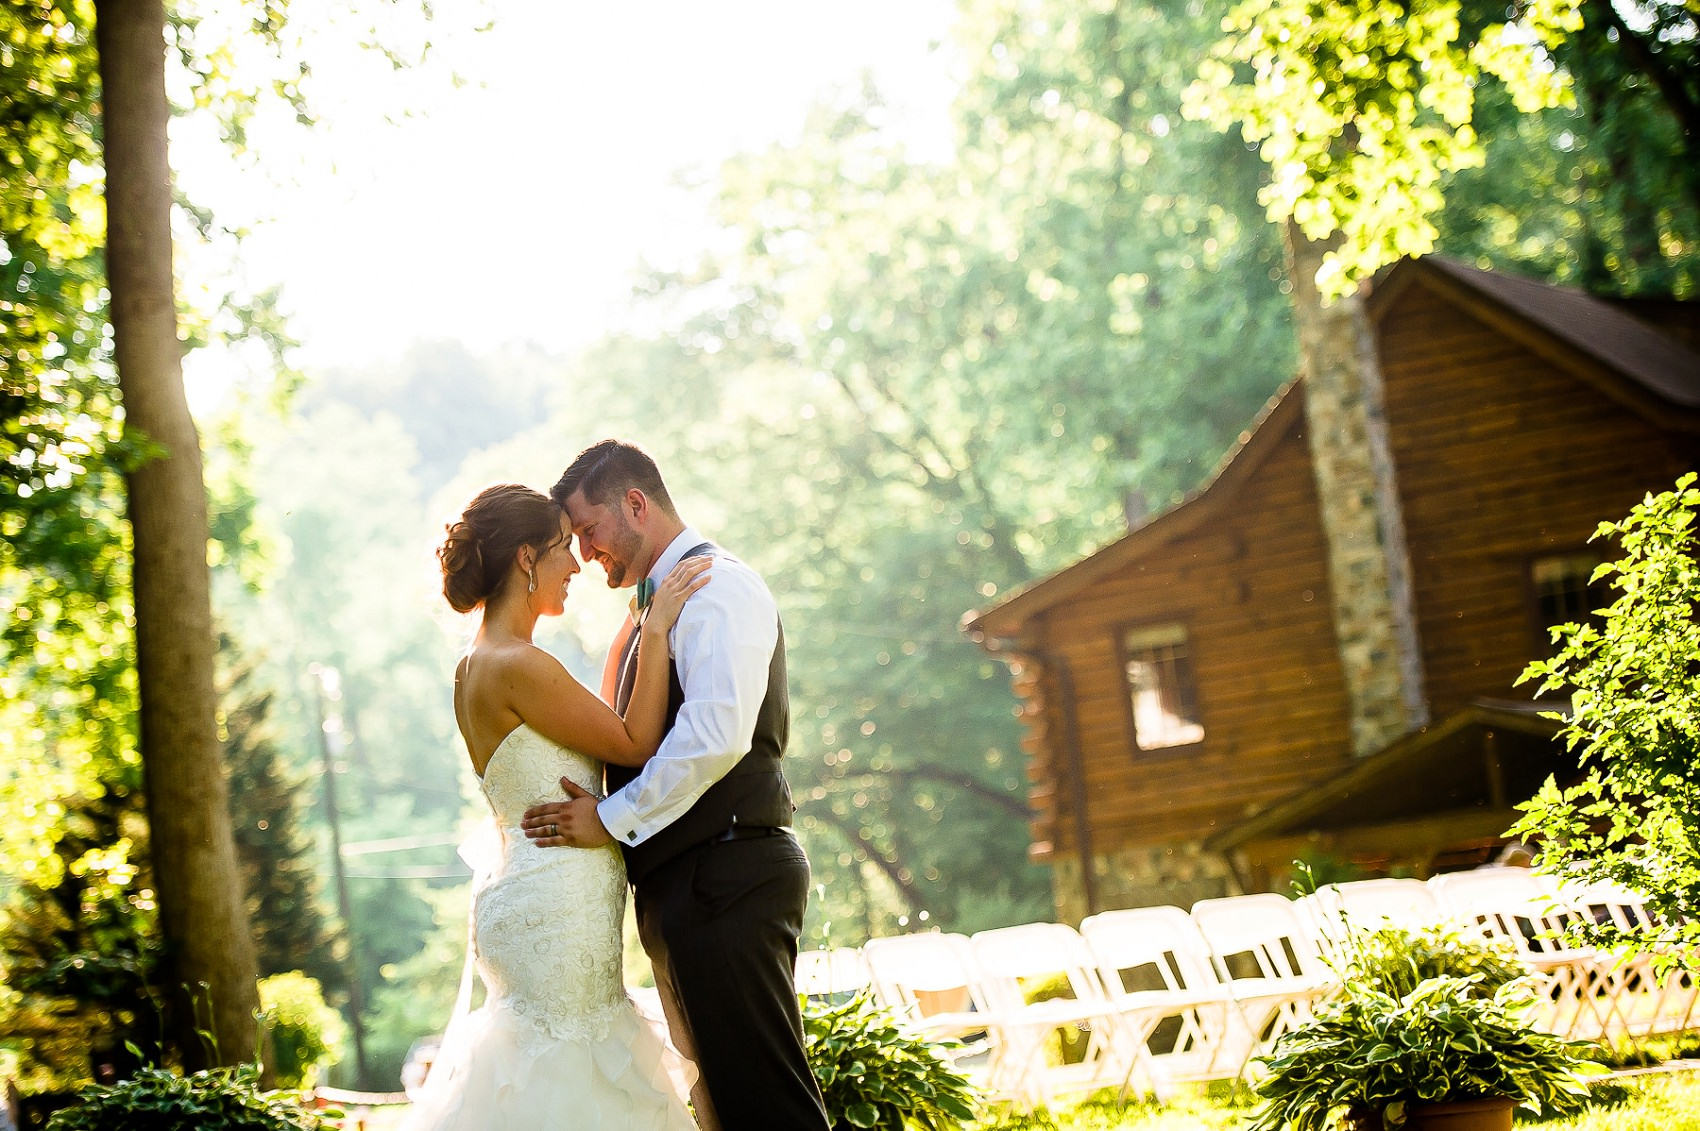 Riverside Weddings | Riverside Weddings By Clore Fredericksburg Amber And David Married